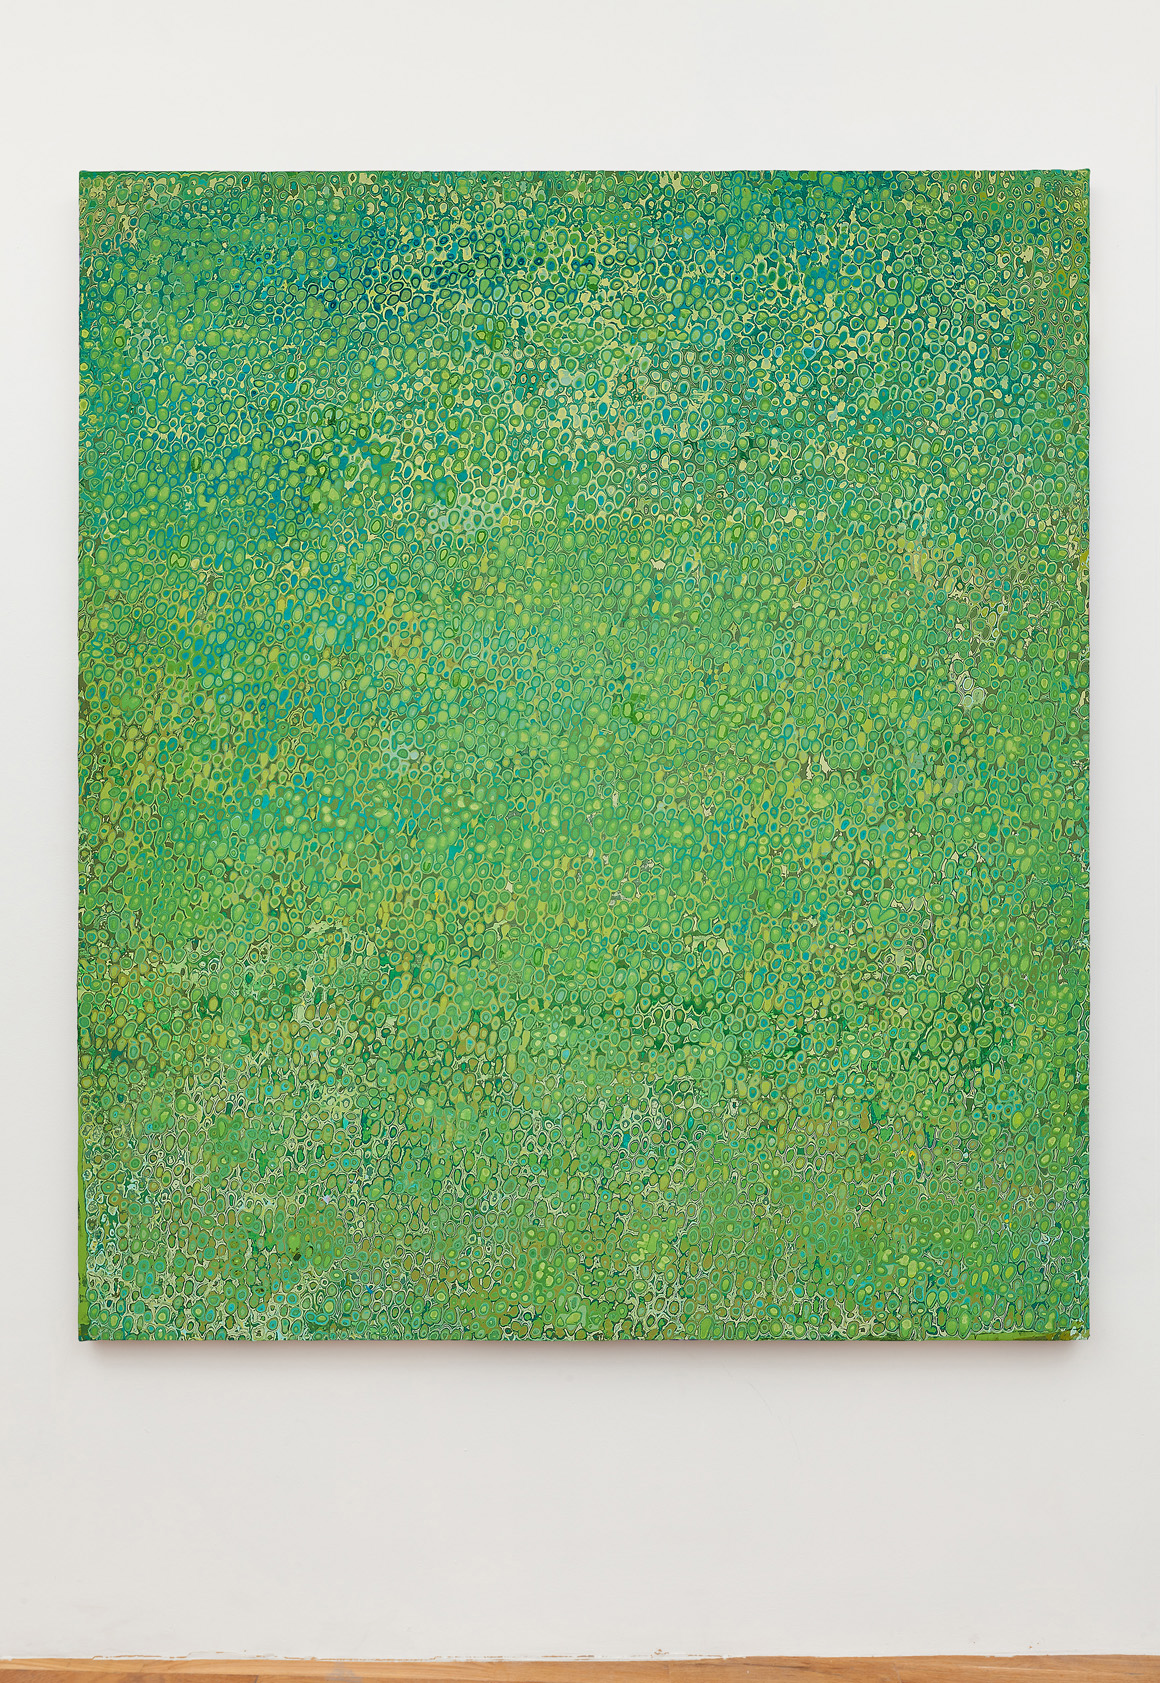 "<p><span class=""name"">Andrew Jensdotter</span><br><em>Green 79</em><span class='media'>Carved latex on canvas</span>80 x 68 in (203.2 x 172.7 cm)<br>2018<br></p>"